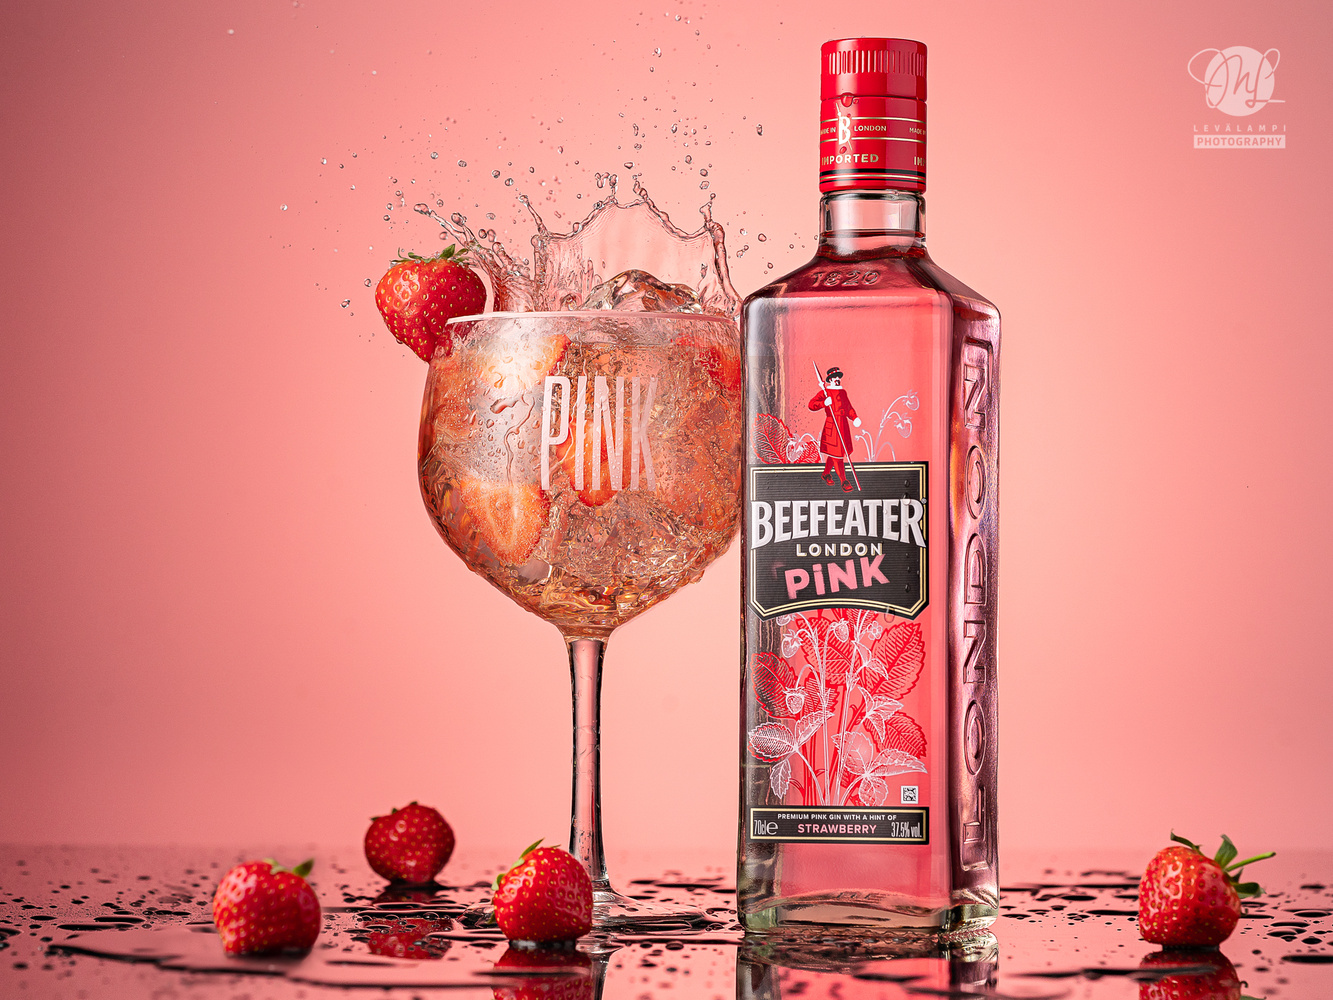 Beefeater Pink splash! by Mika Levälampi